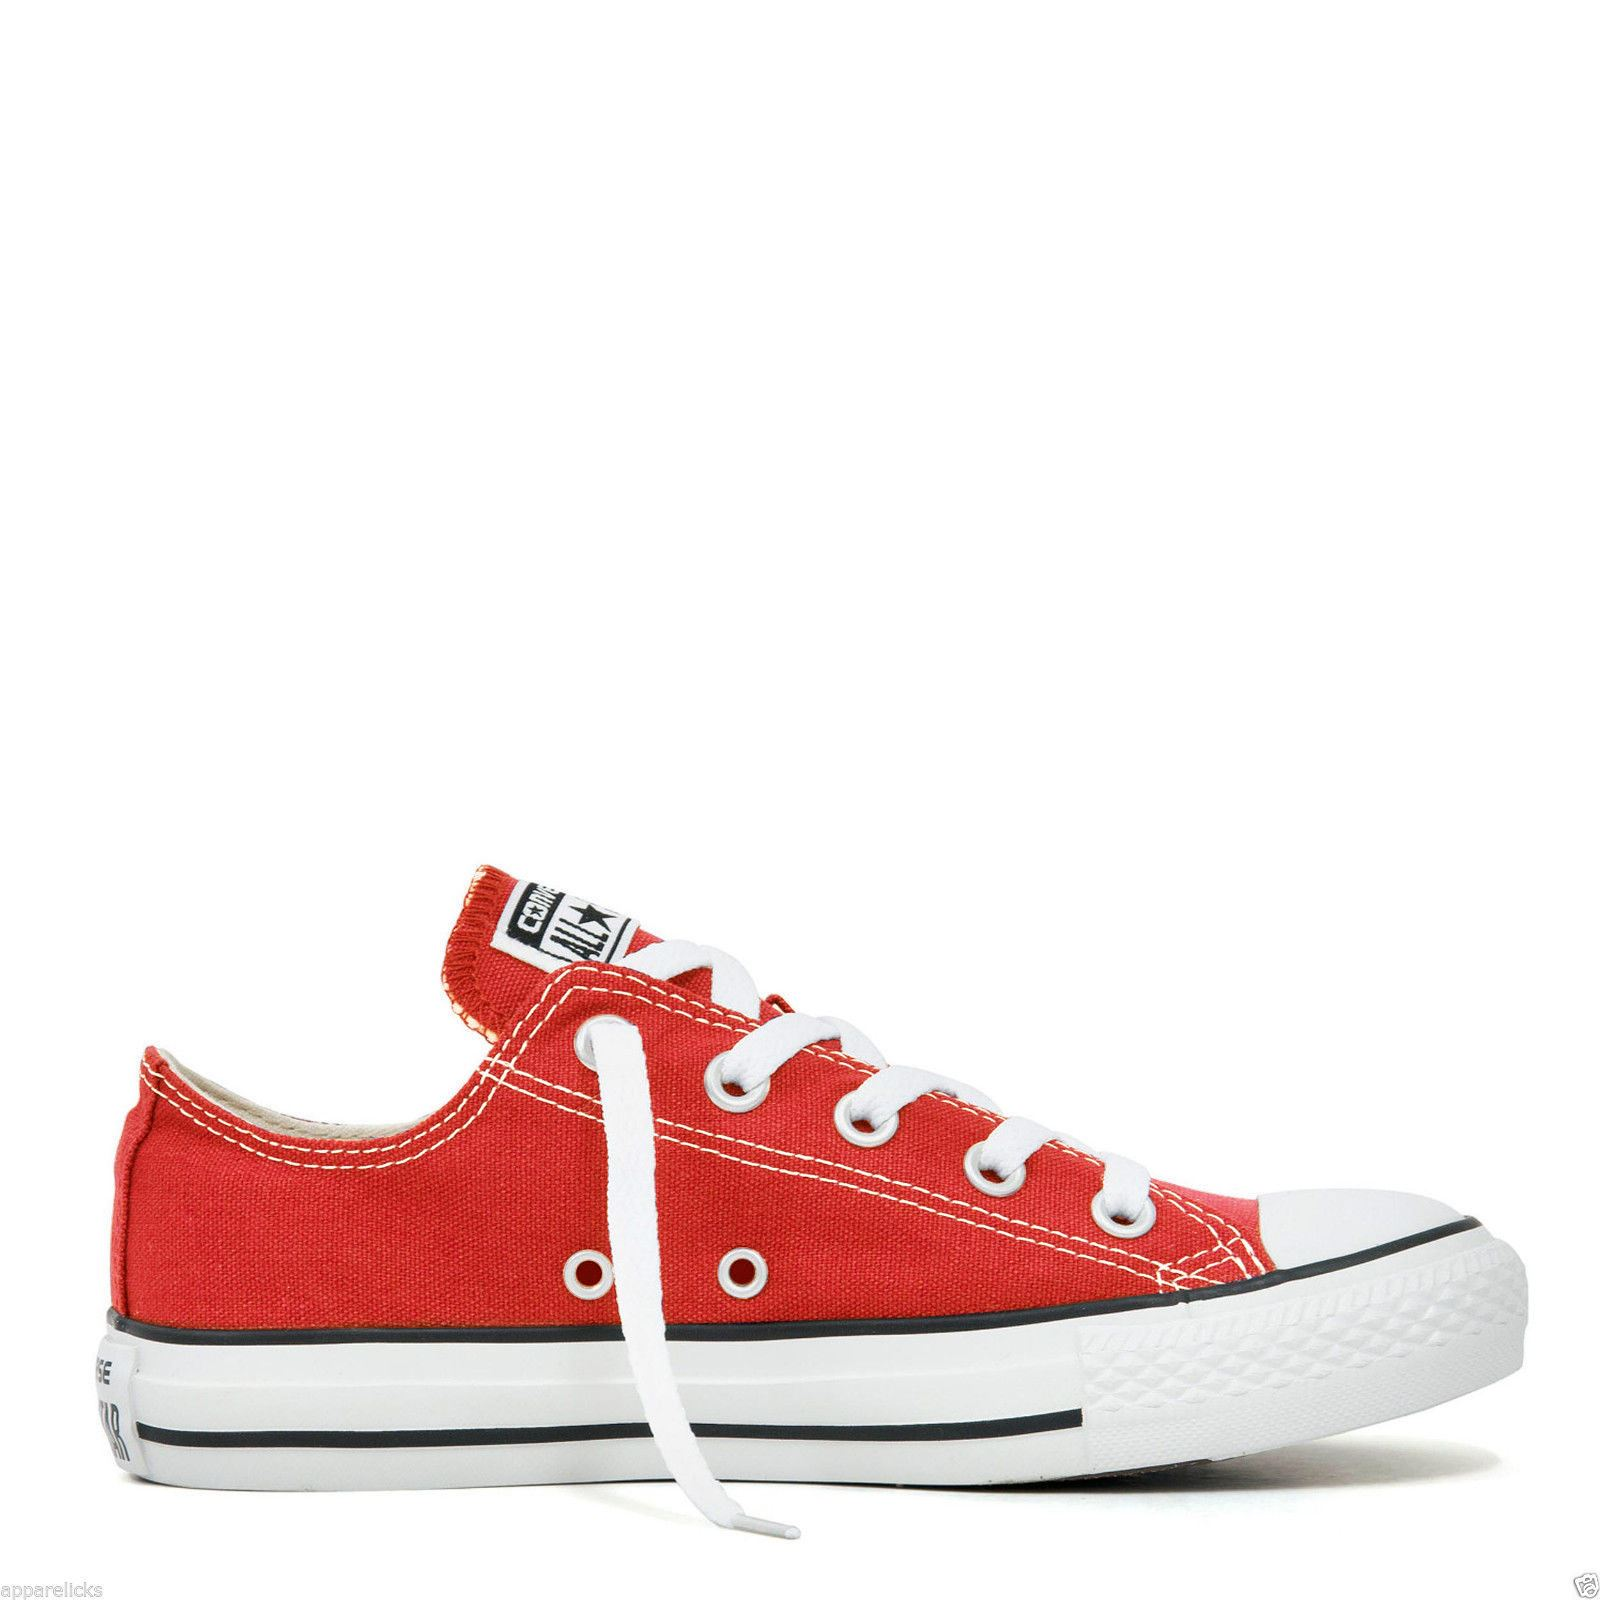 Converse-All-Star-Unisex-Chuck-Taylor-New-Mens-Womens-Low-Tops-Trainers-Pumps thumbnail 26